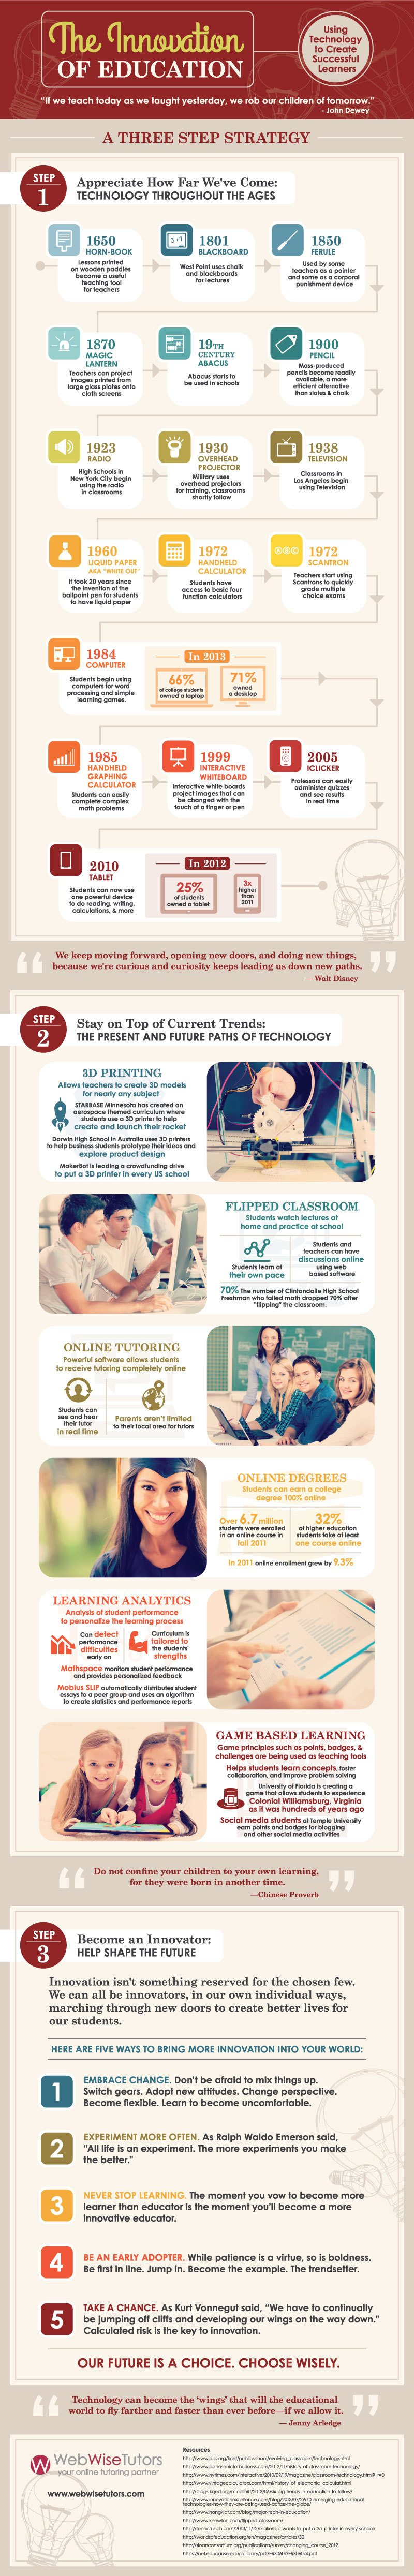 Innovation of Education Infographic